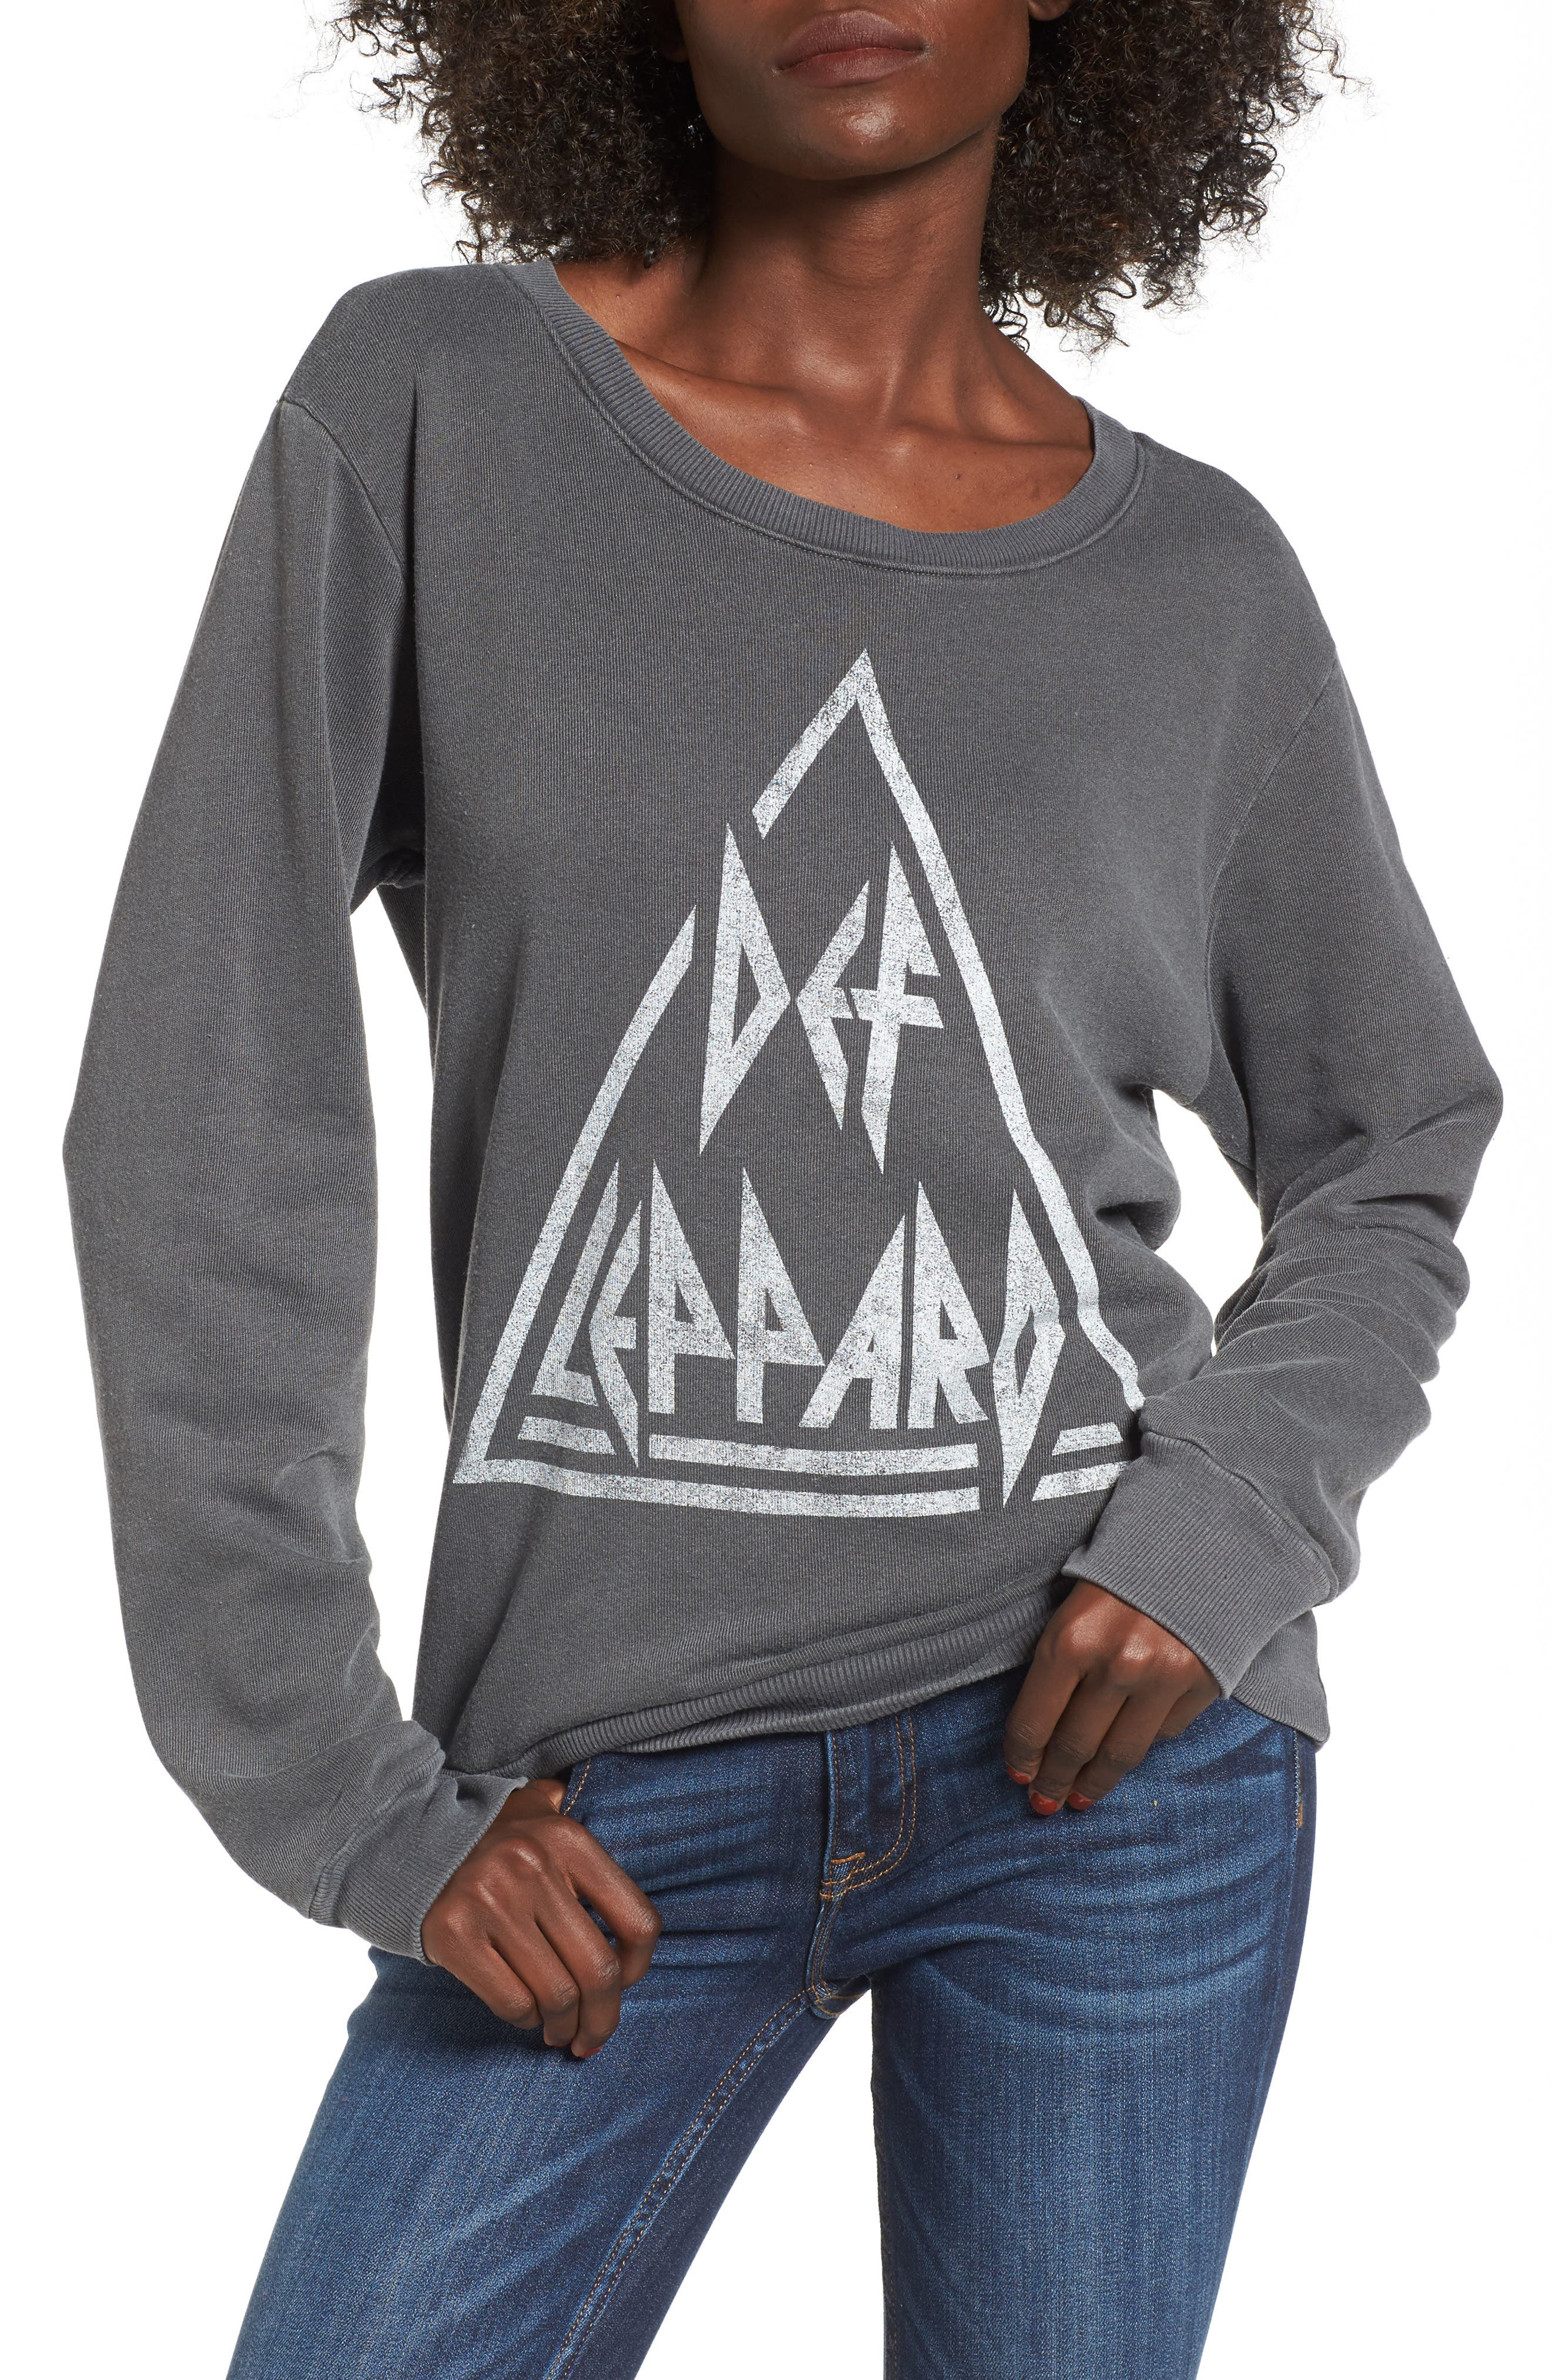 Def Leppard Sweatshirt,                             Main thumbnail 1, color,                             Faded Black